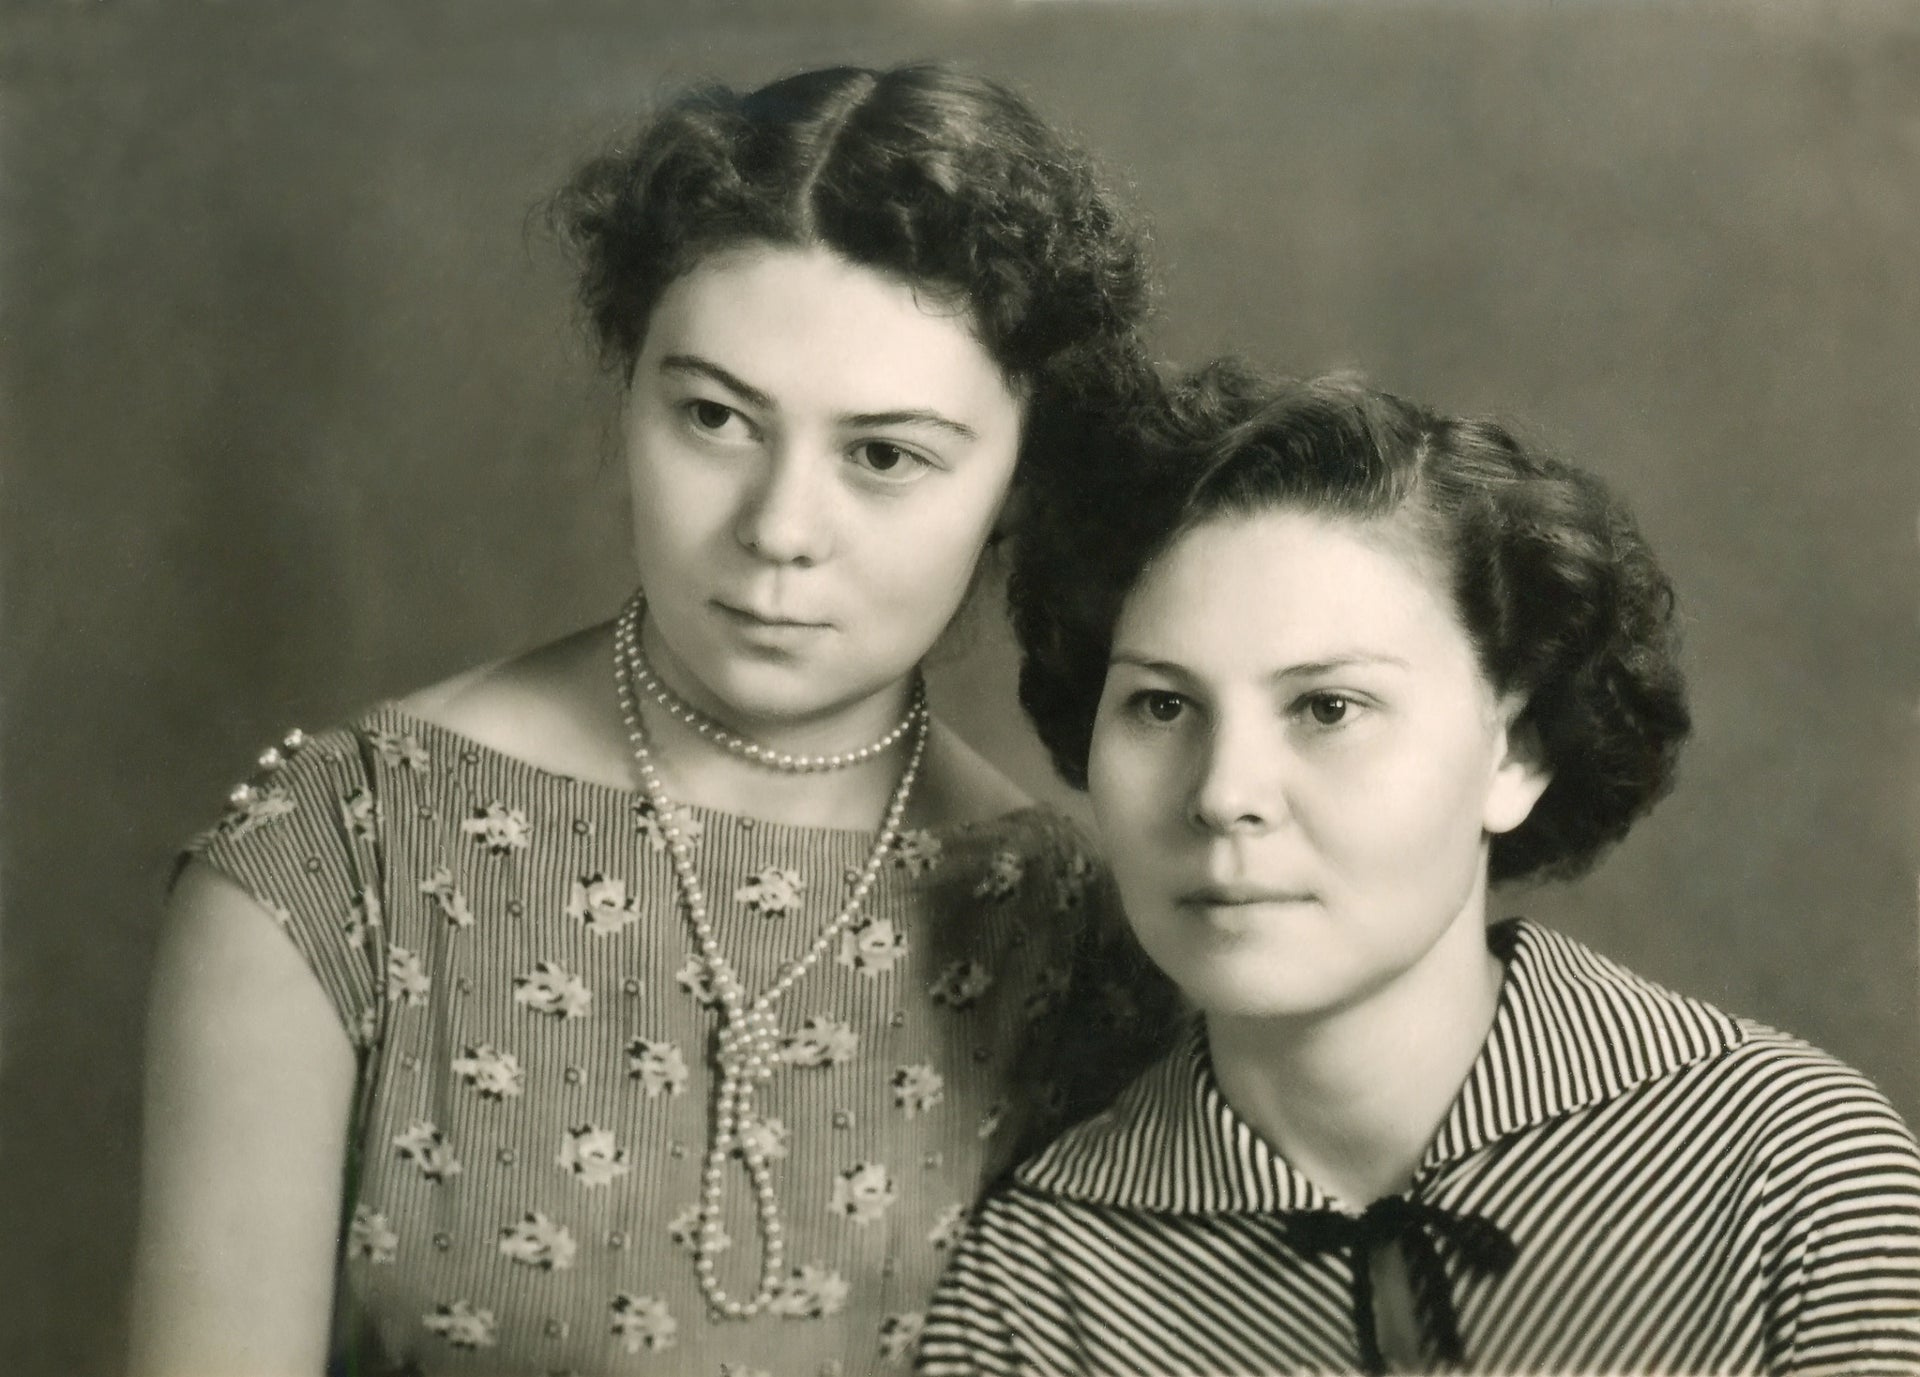 An illustrative black and white photo showing two women posing for a portrait.